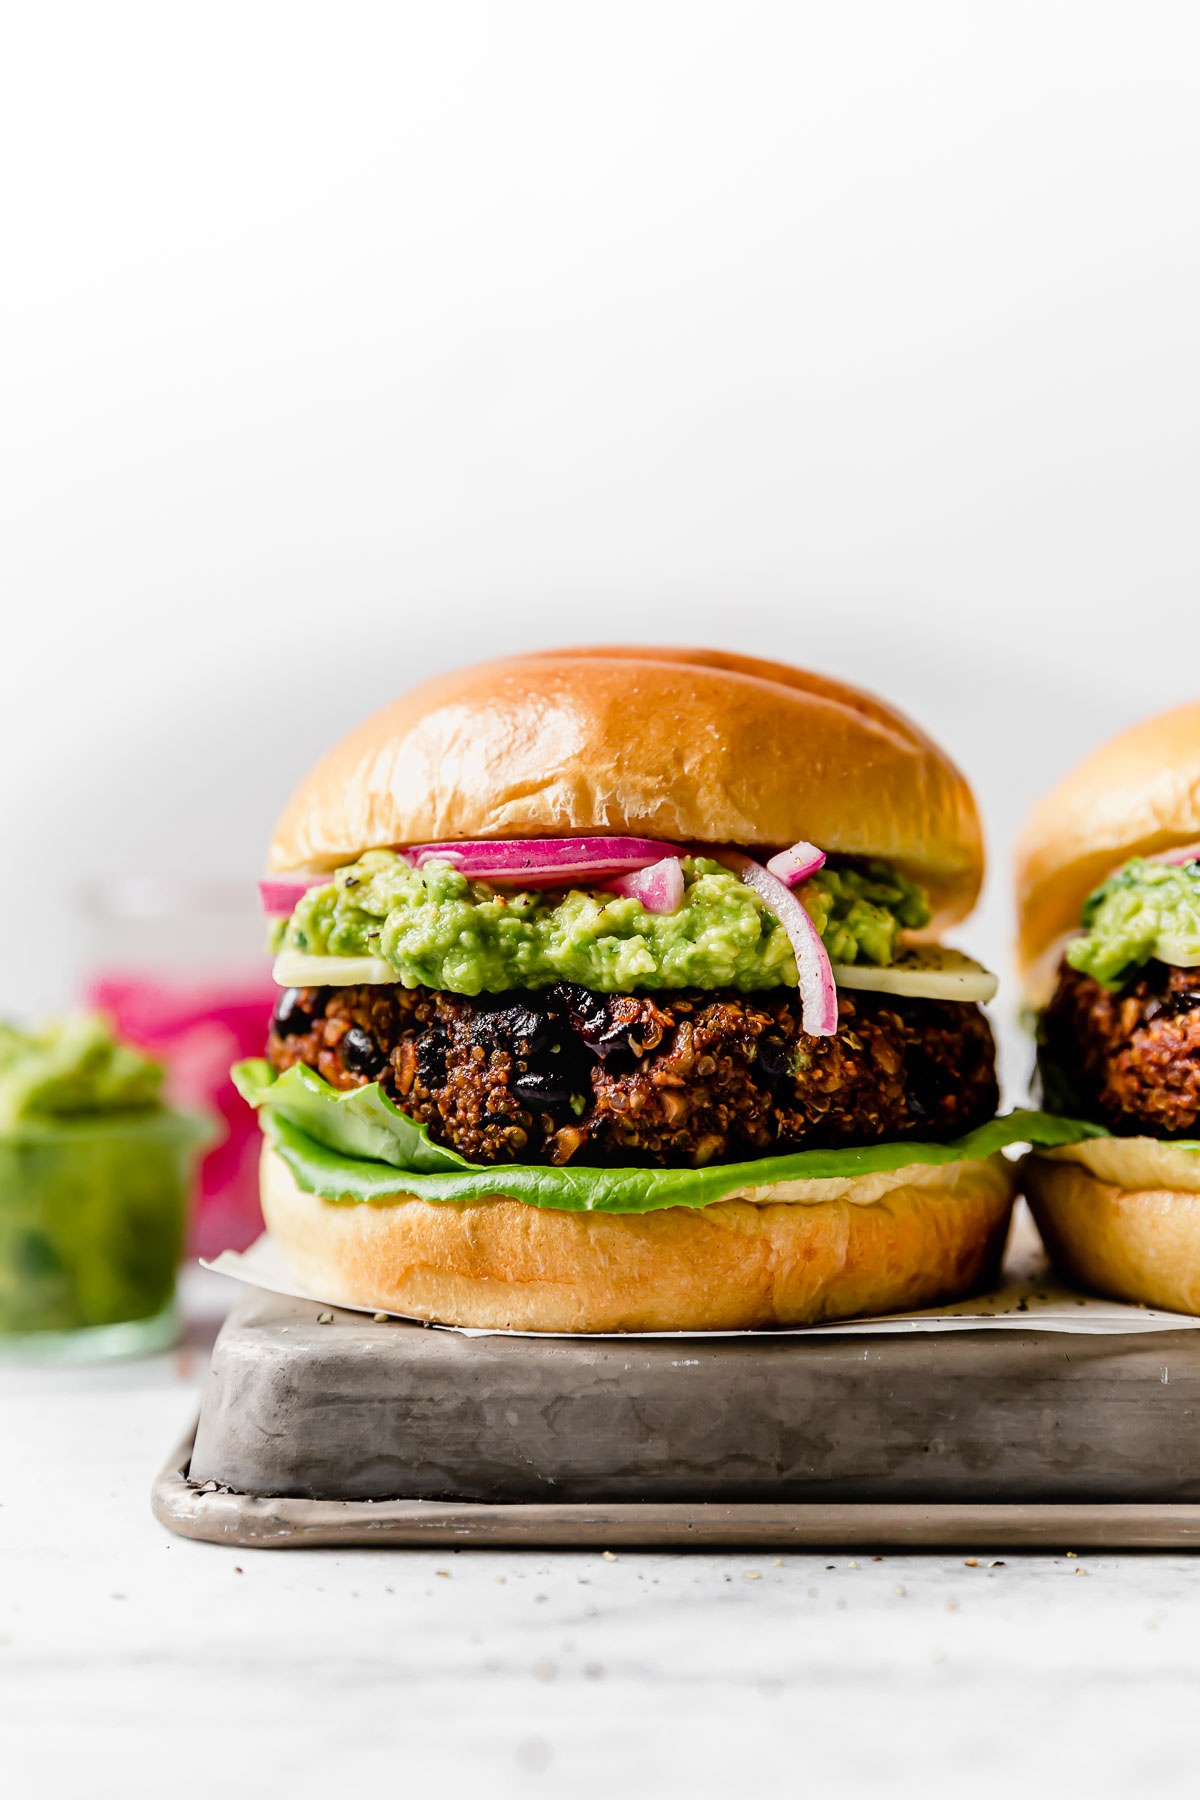 Grilled Black Bean Burgers on brioche buns, topped with lettuce, cheese, guacamole & pickled red onion. The burgers are placed on a small metal tray, with jars of guacamole & pickled red onions in the background.